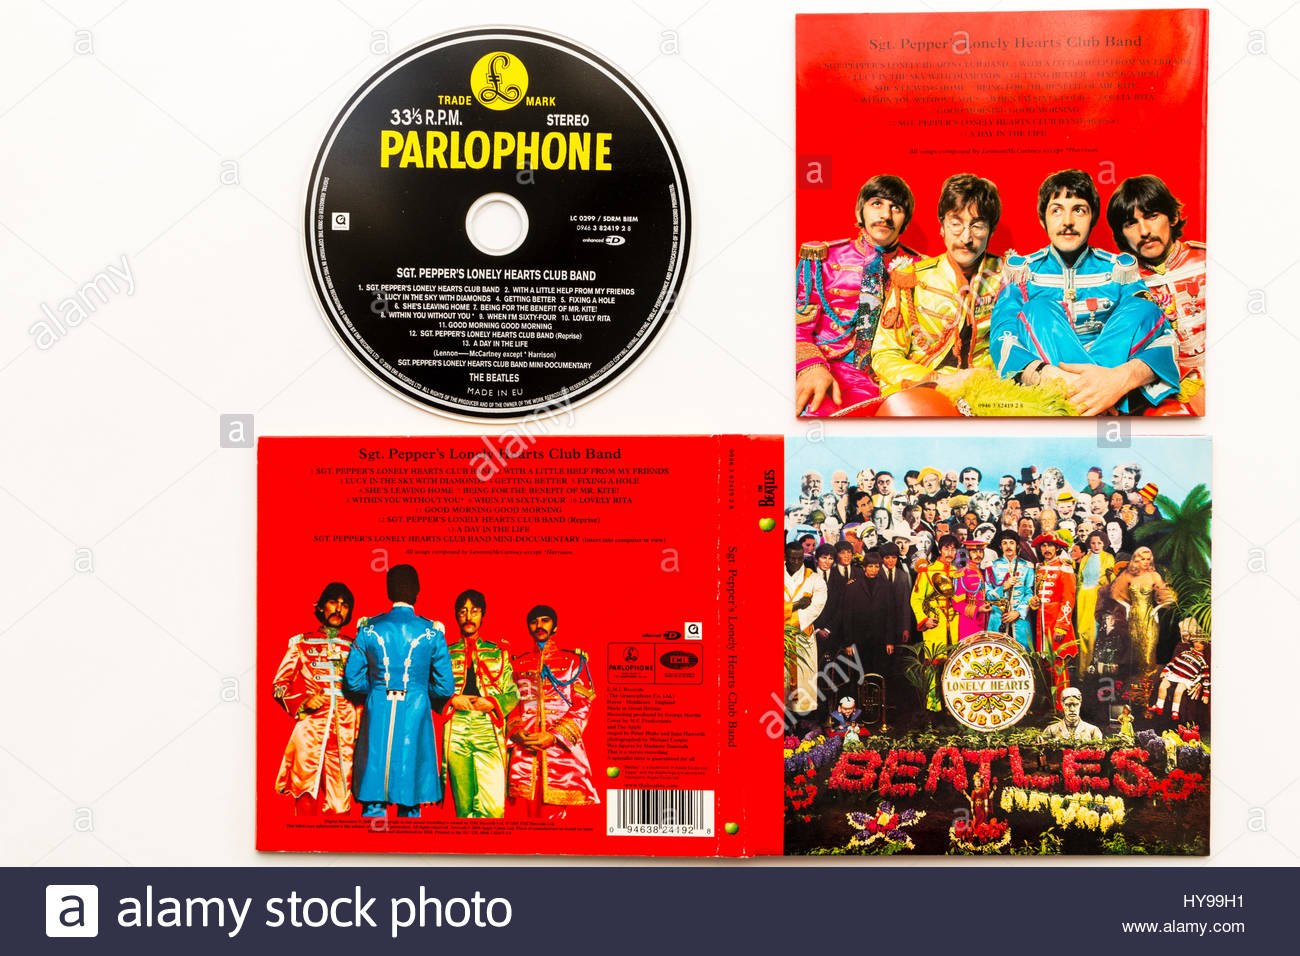 the beatles cd verison of sgt pepper s lonely hearts club band